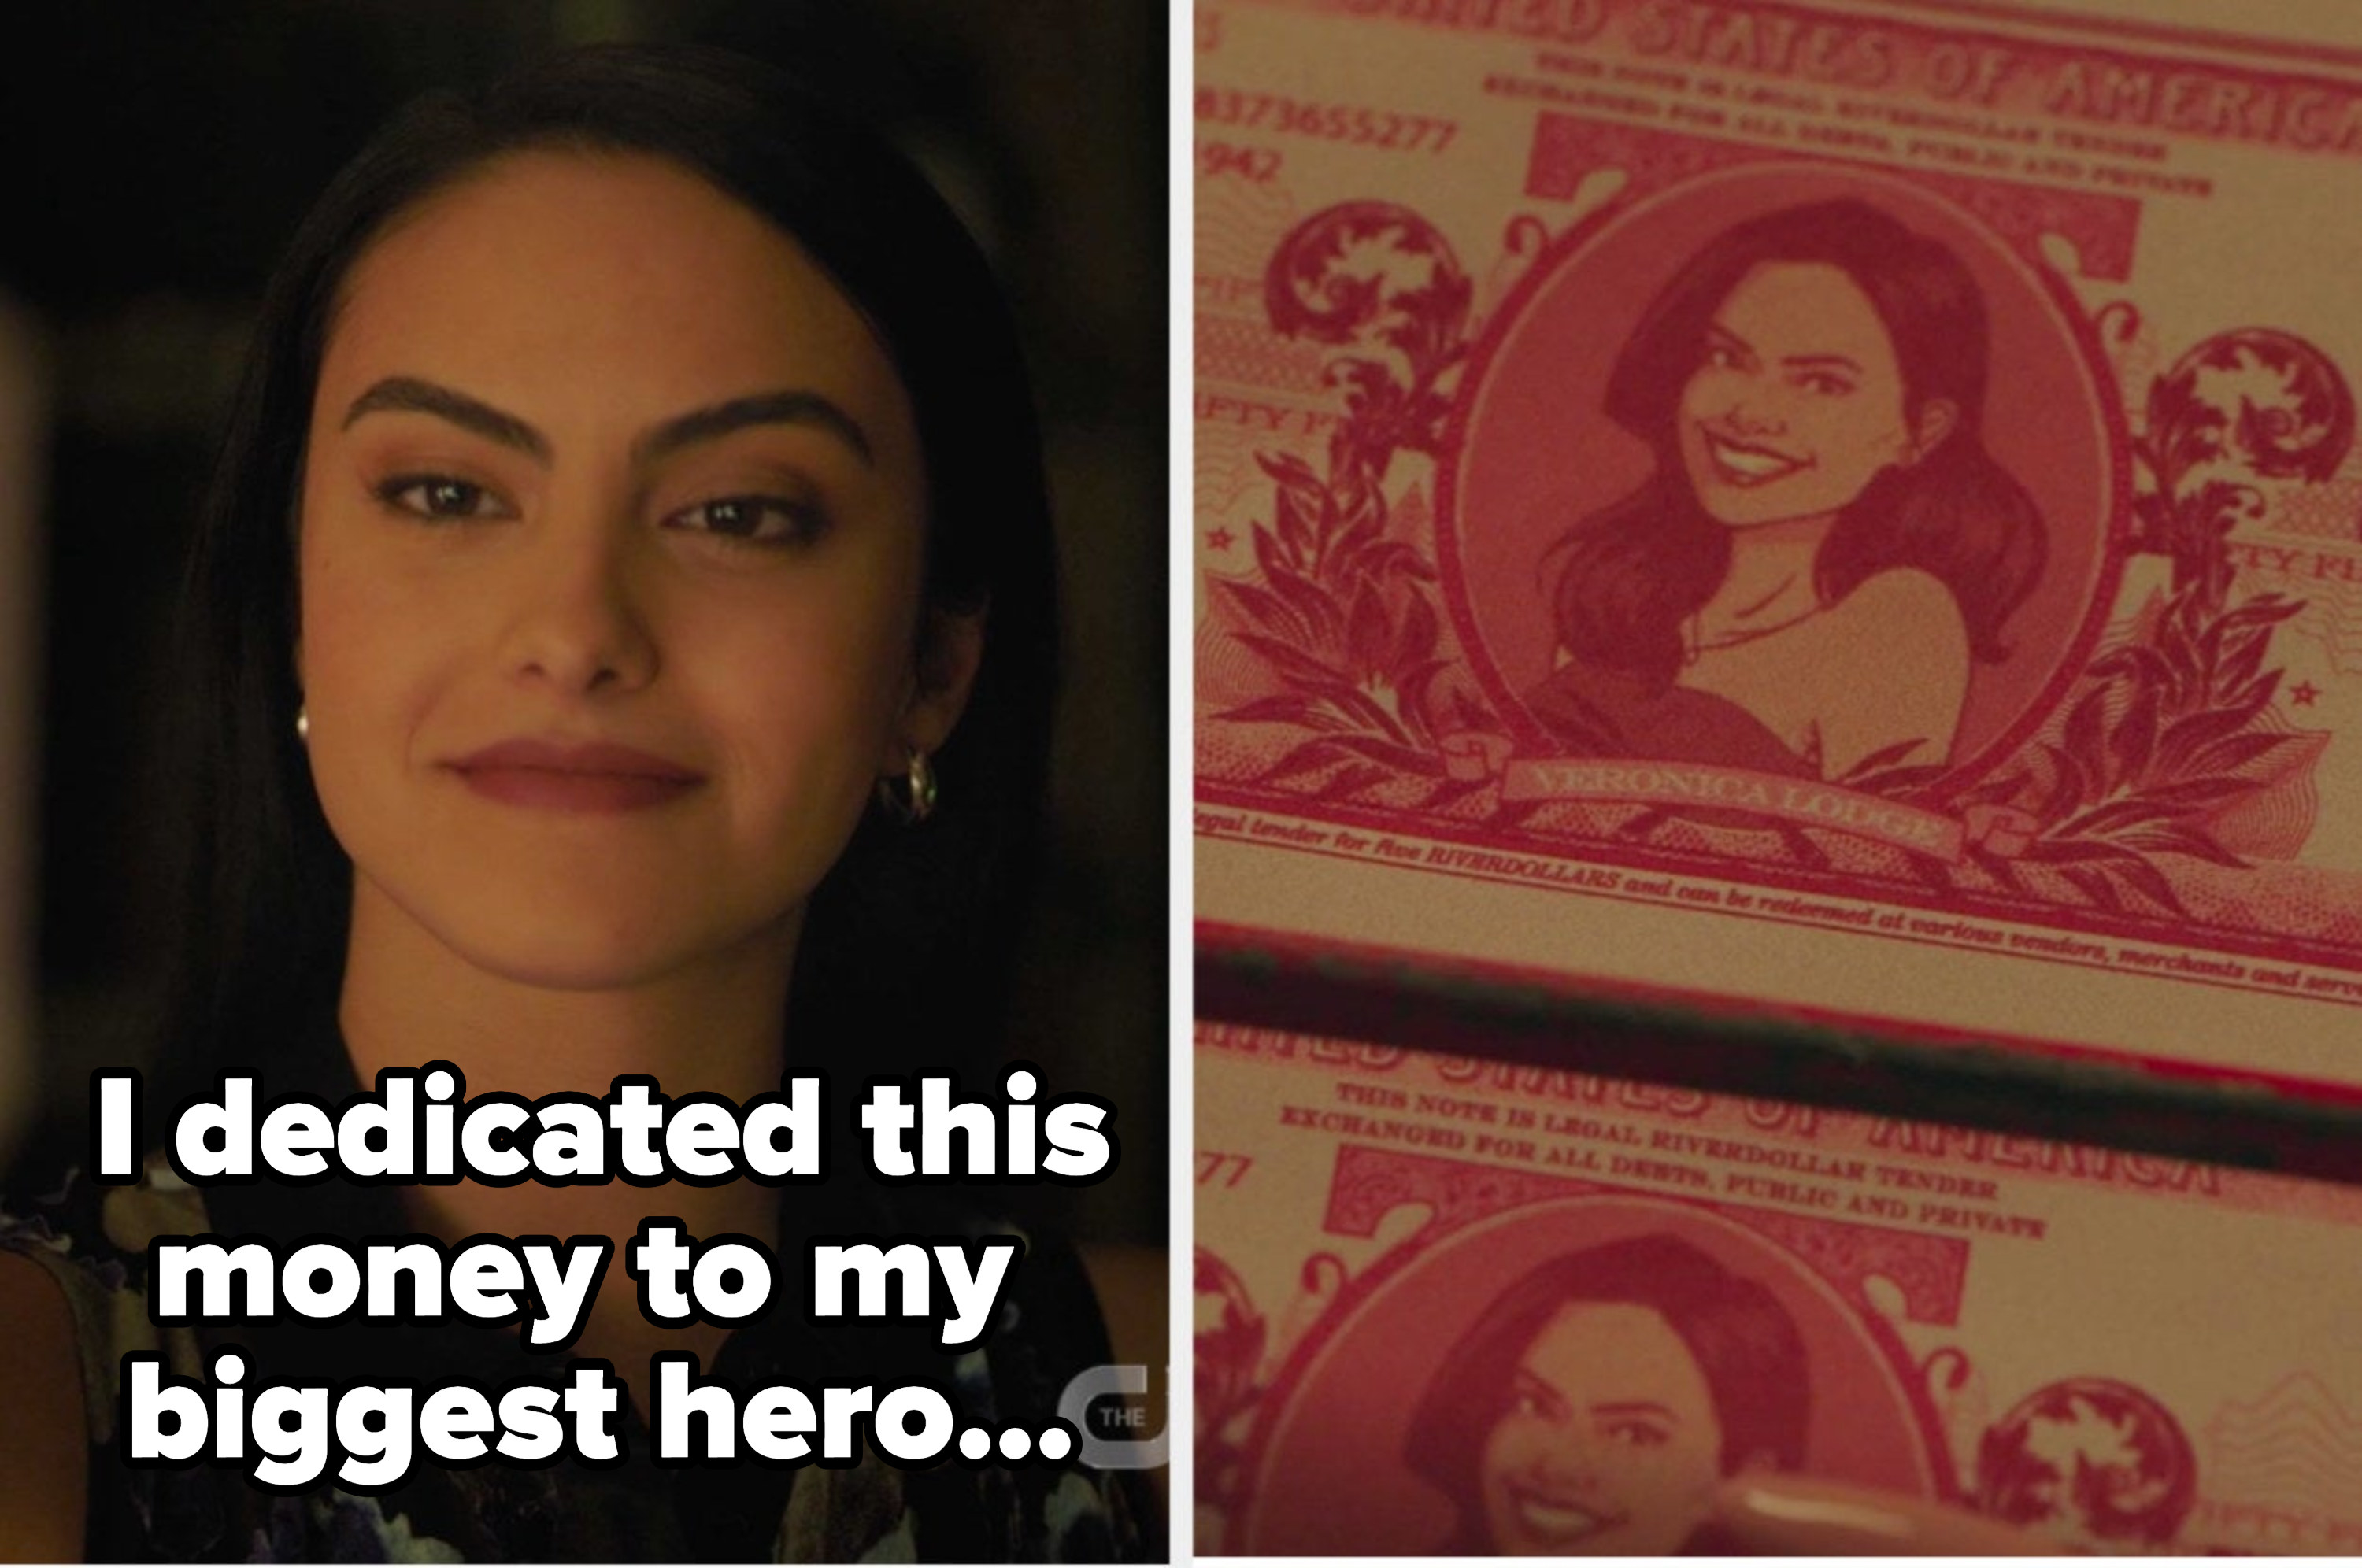 """Veronica side by side with her riverdollars saying """"I dedicated this money to my biggest hero"""""""